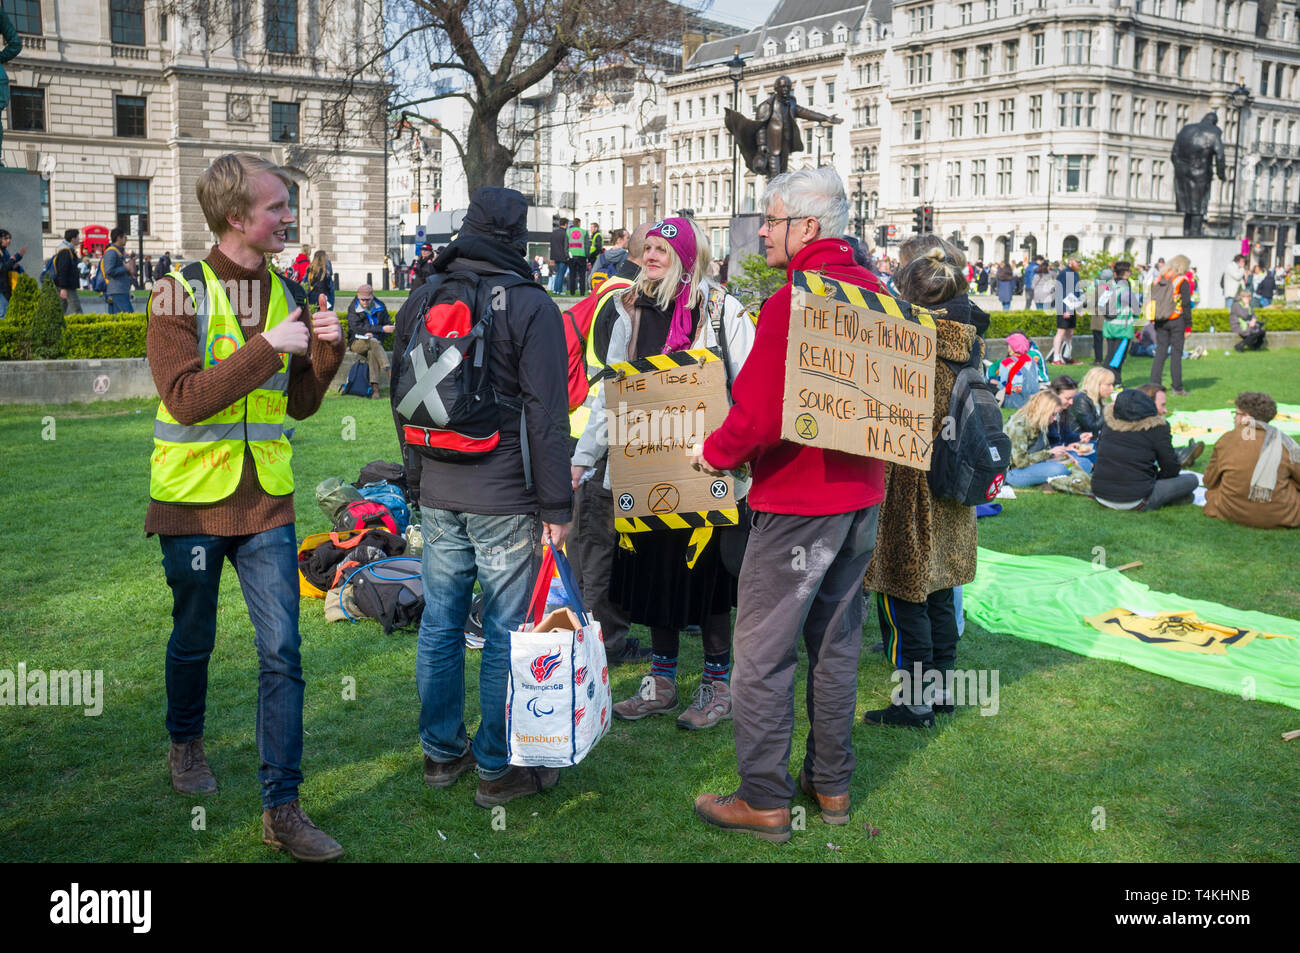 Demonstrators with banners congregate on Parliament Green, Westminster for the Extinction Rebellion demonstration Stock Photo